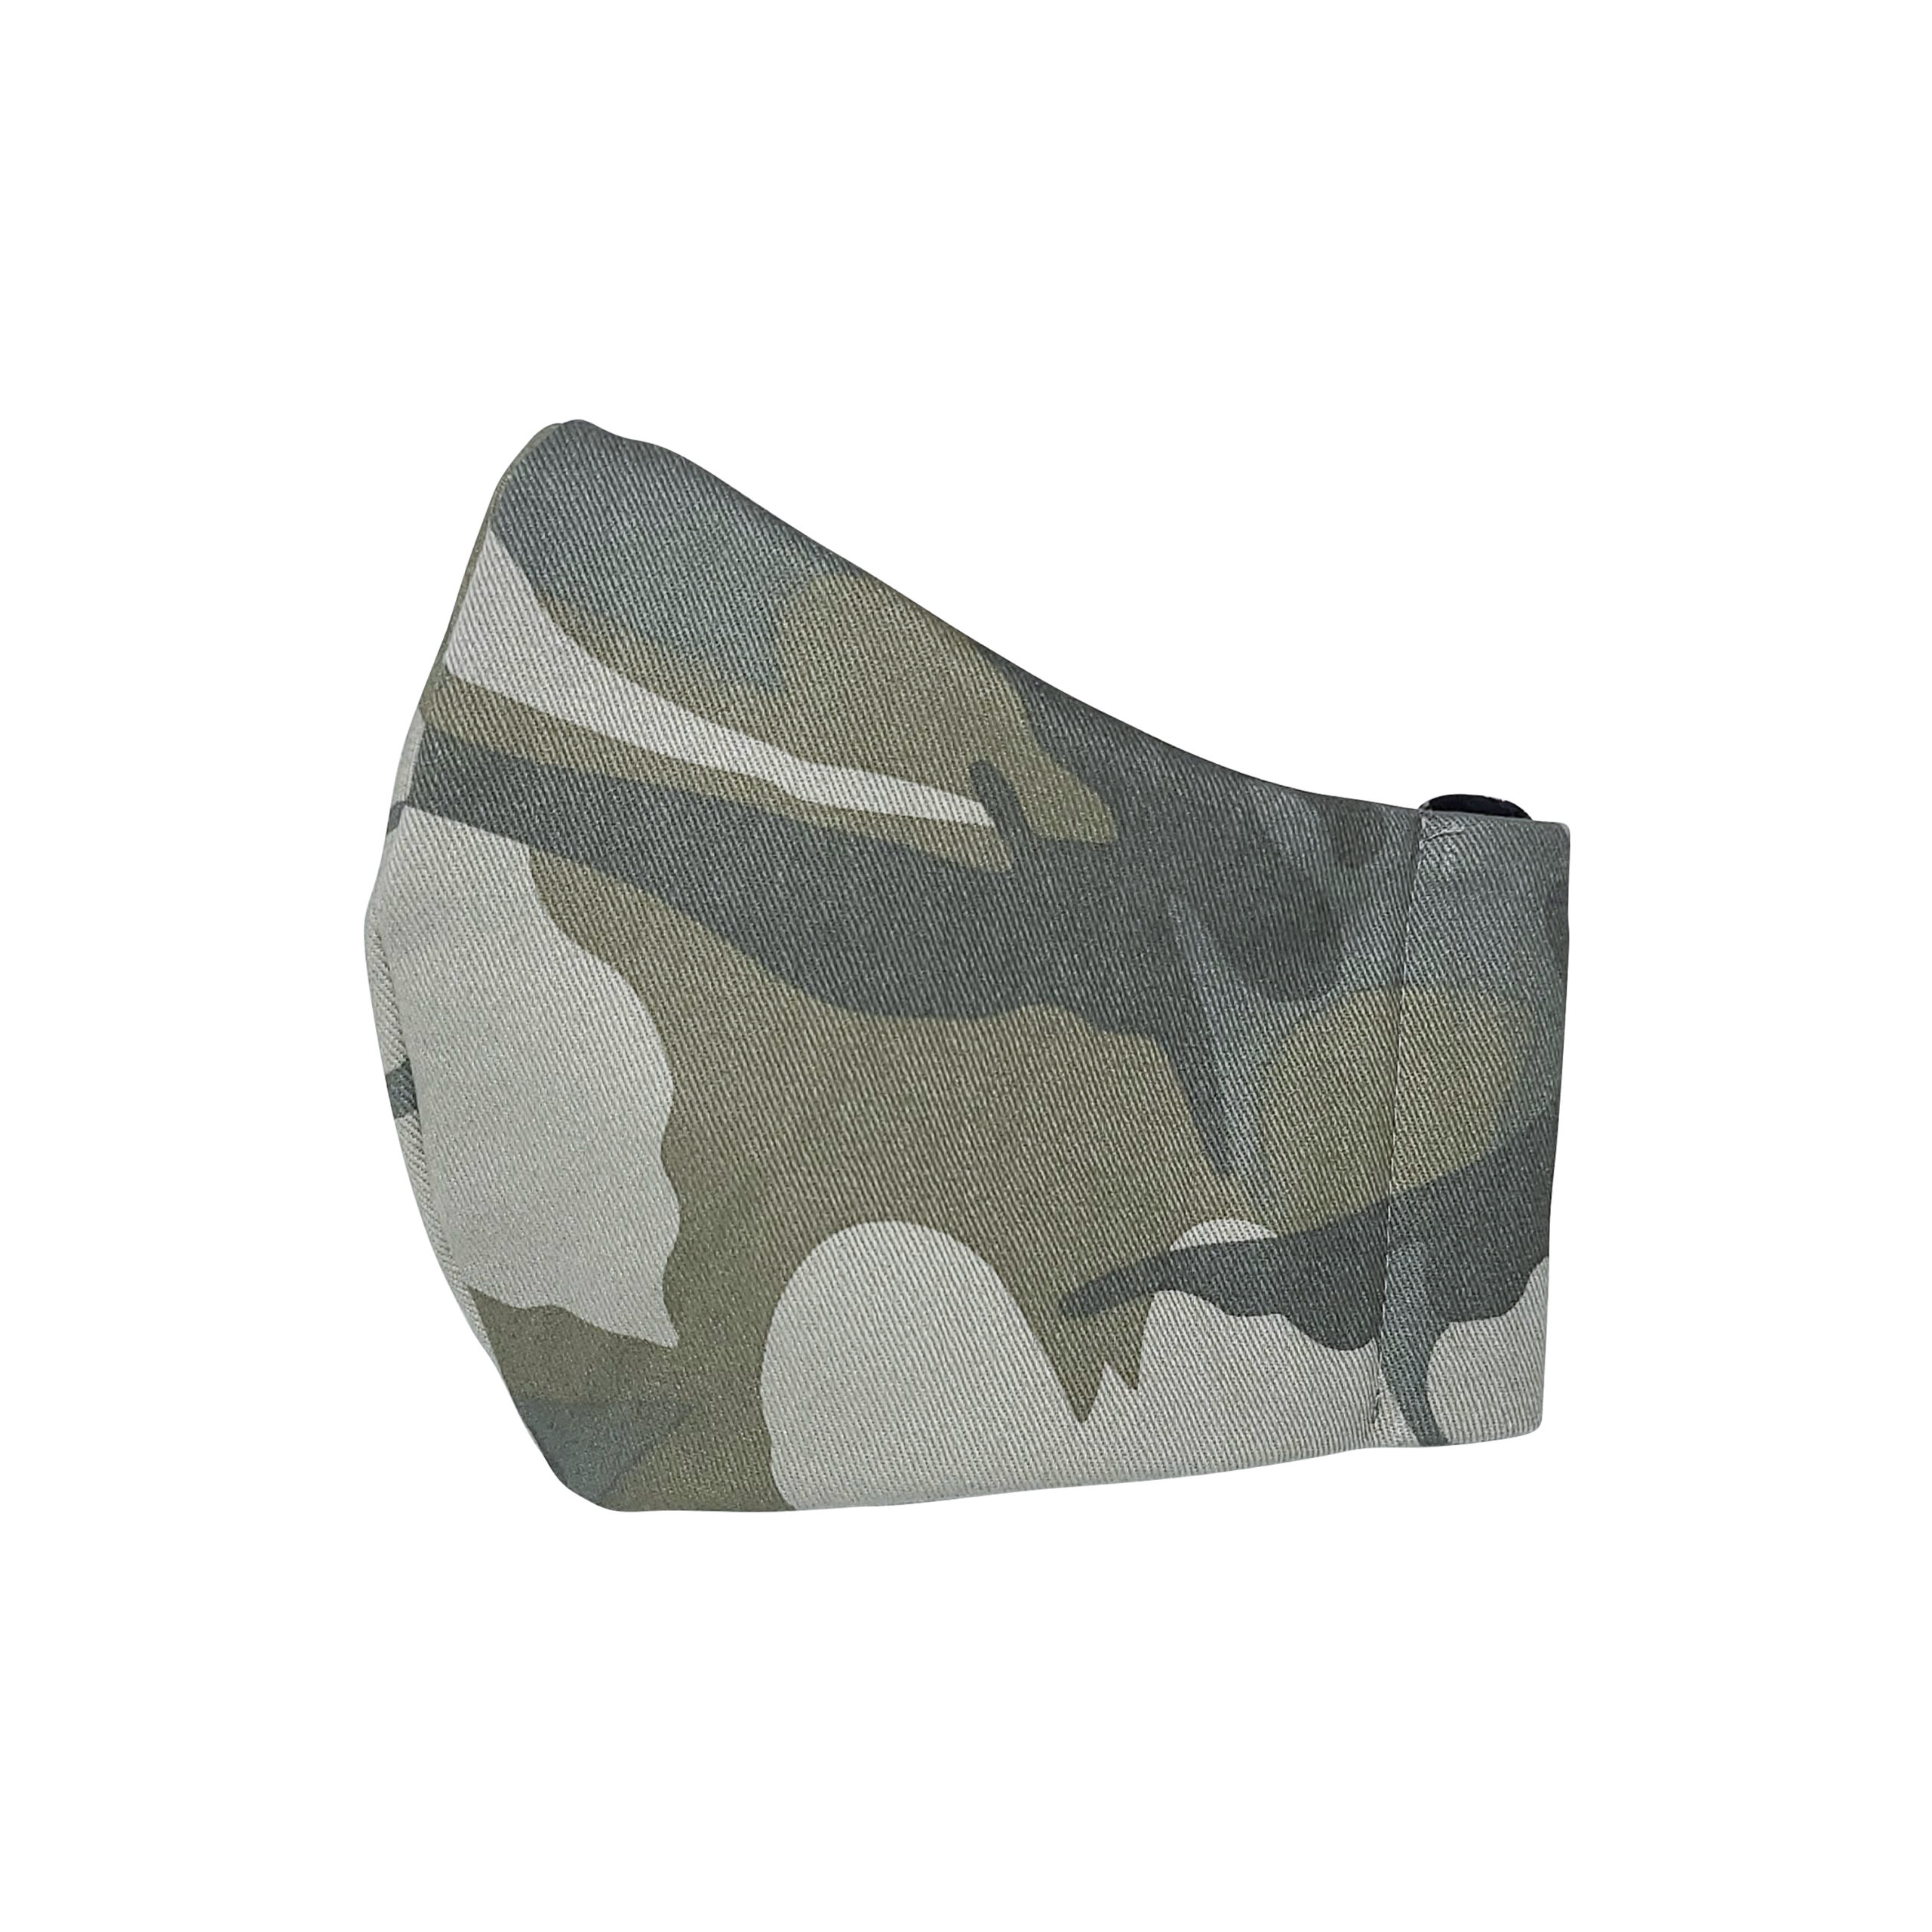 Camouflage Adjustable Face Mask Bandana for Outdoors, Dust, Festival, Outdoors, Sports; Three Layers Sustainable Fabric & Unisex Style